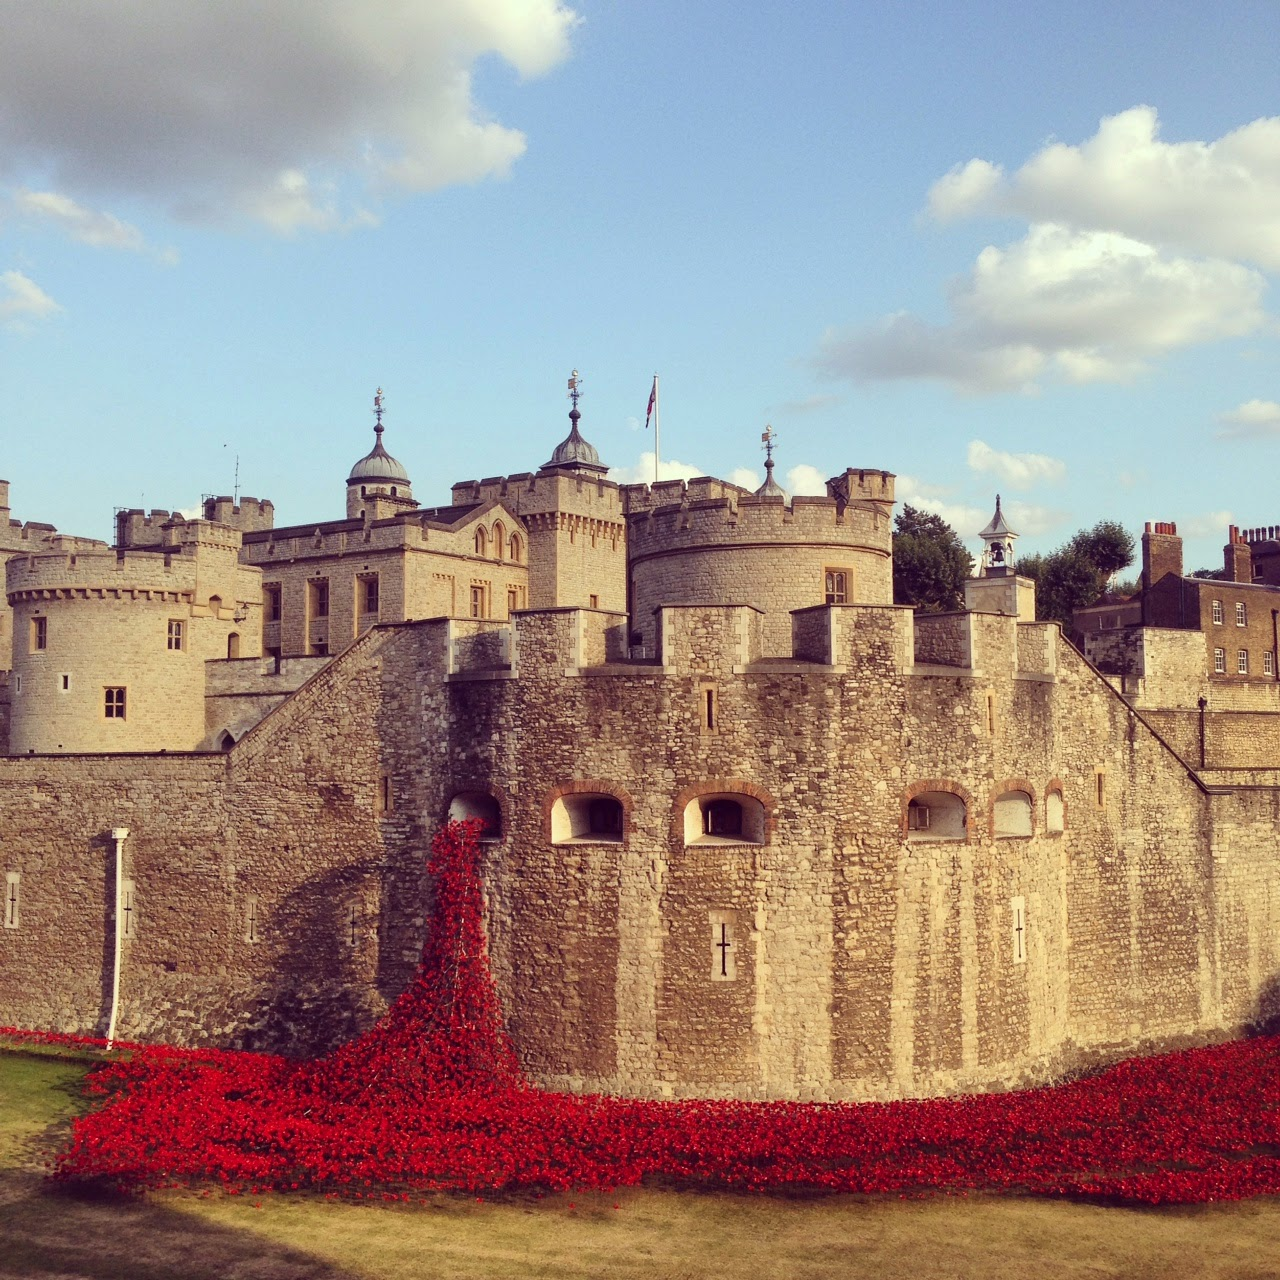 Art Installation Tower of London Poppies Poppies at The Tower of London